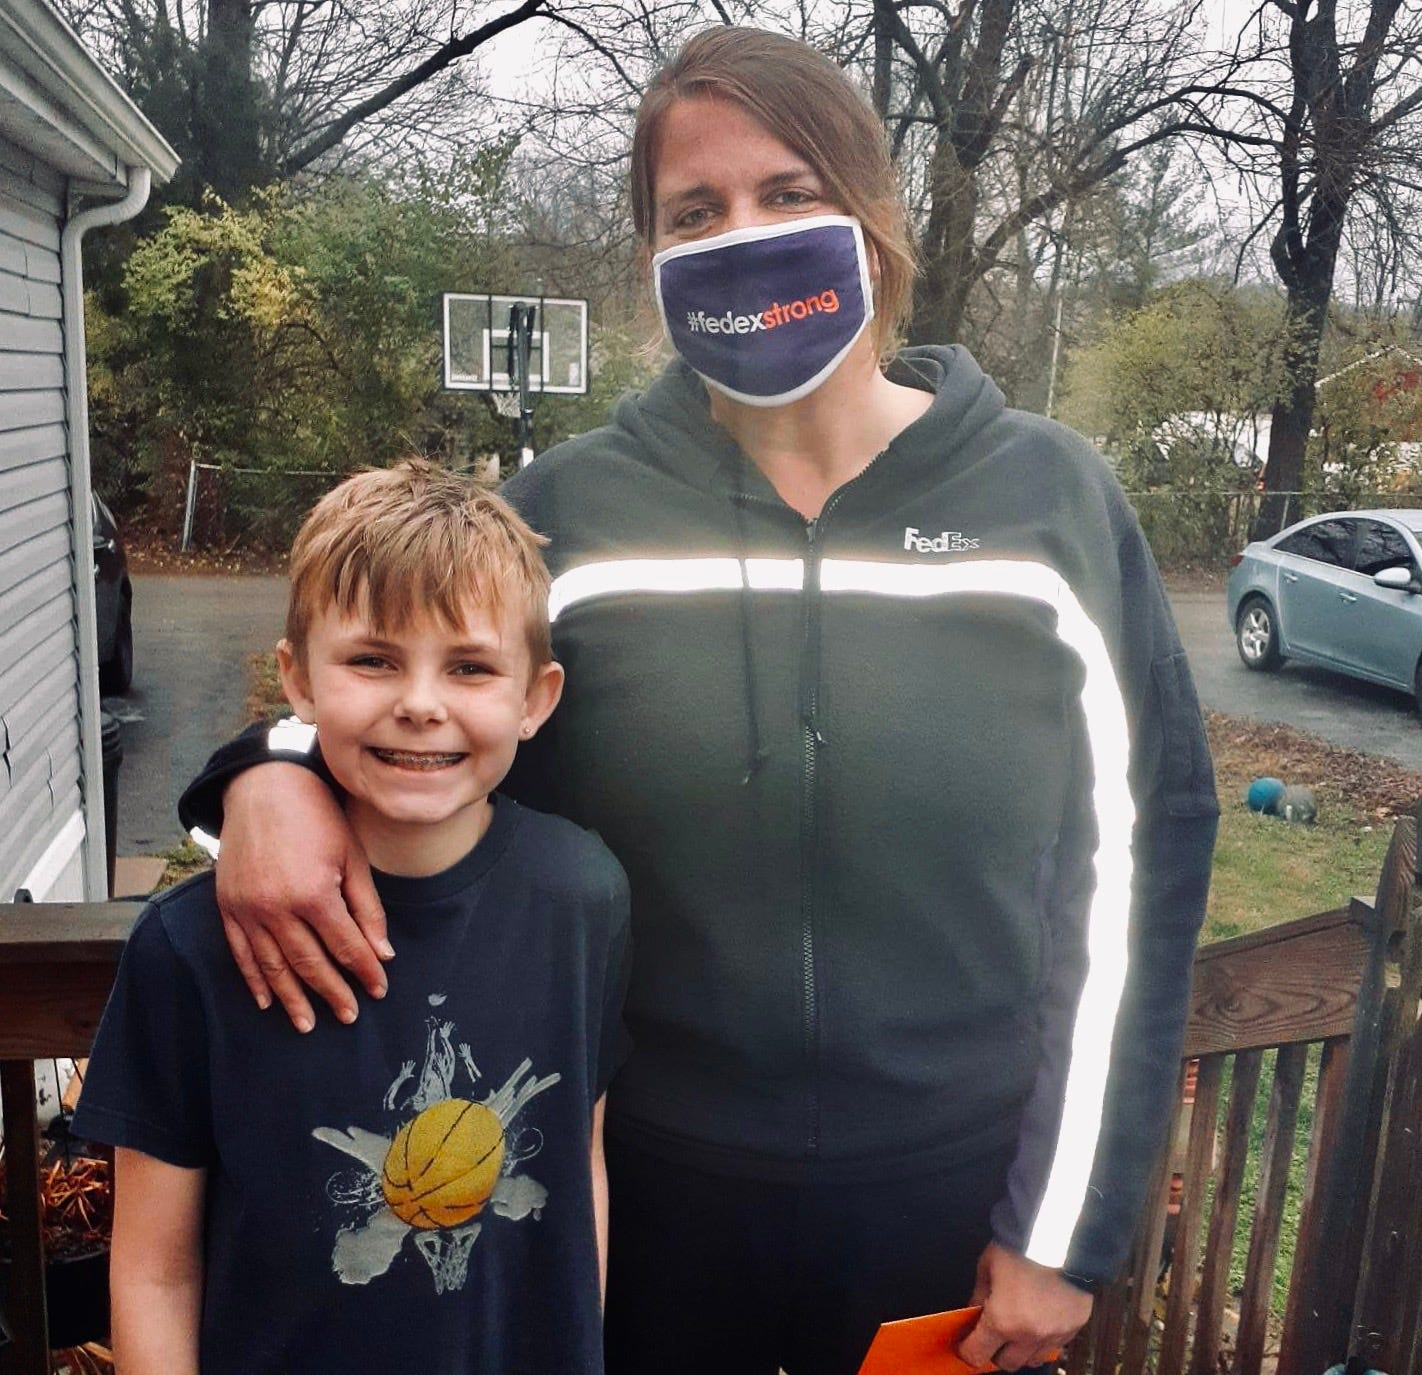 FedEx driver saw young boy shooting hoops on bent, rusty basketball goal. She secretly bought him a new one